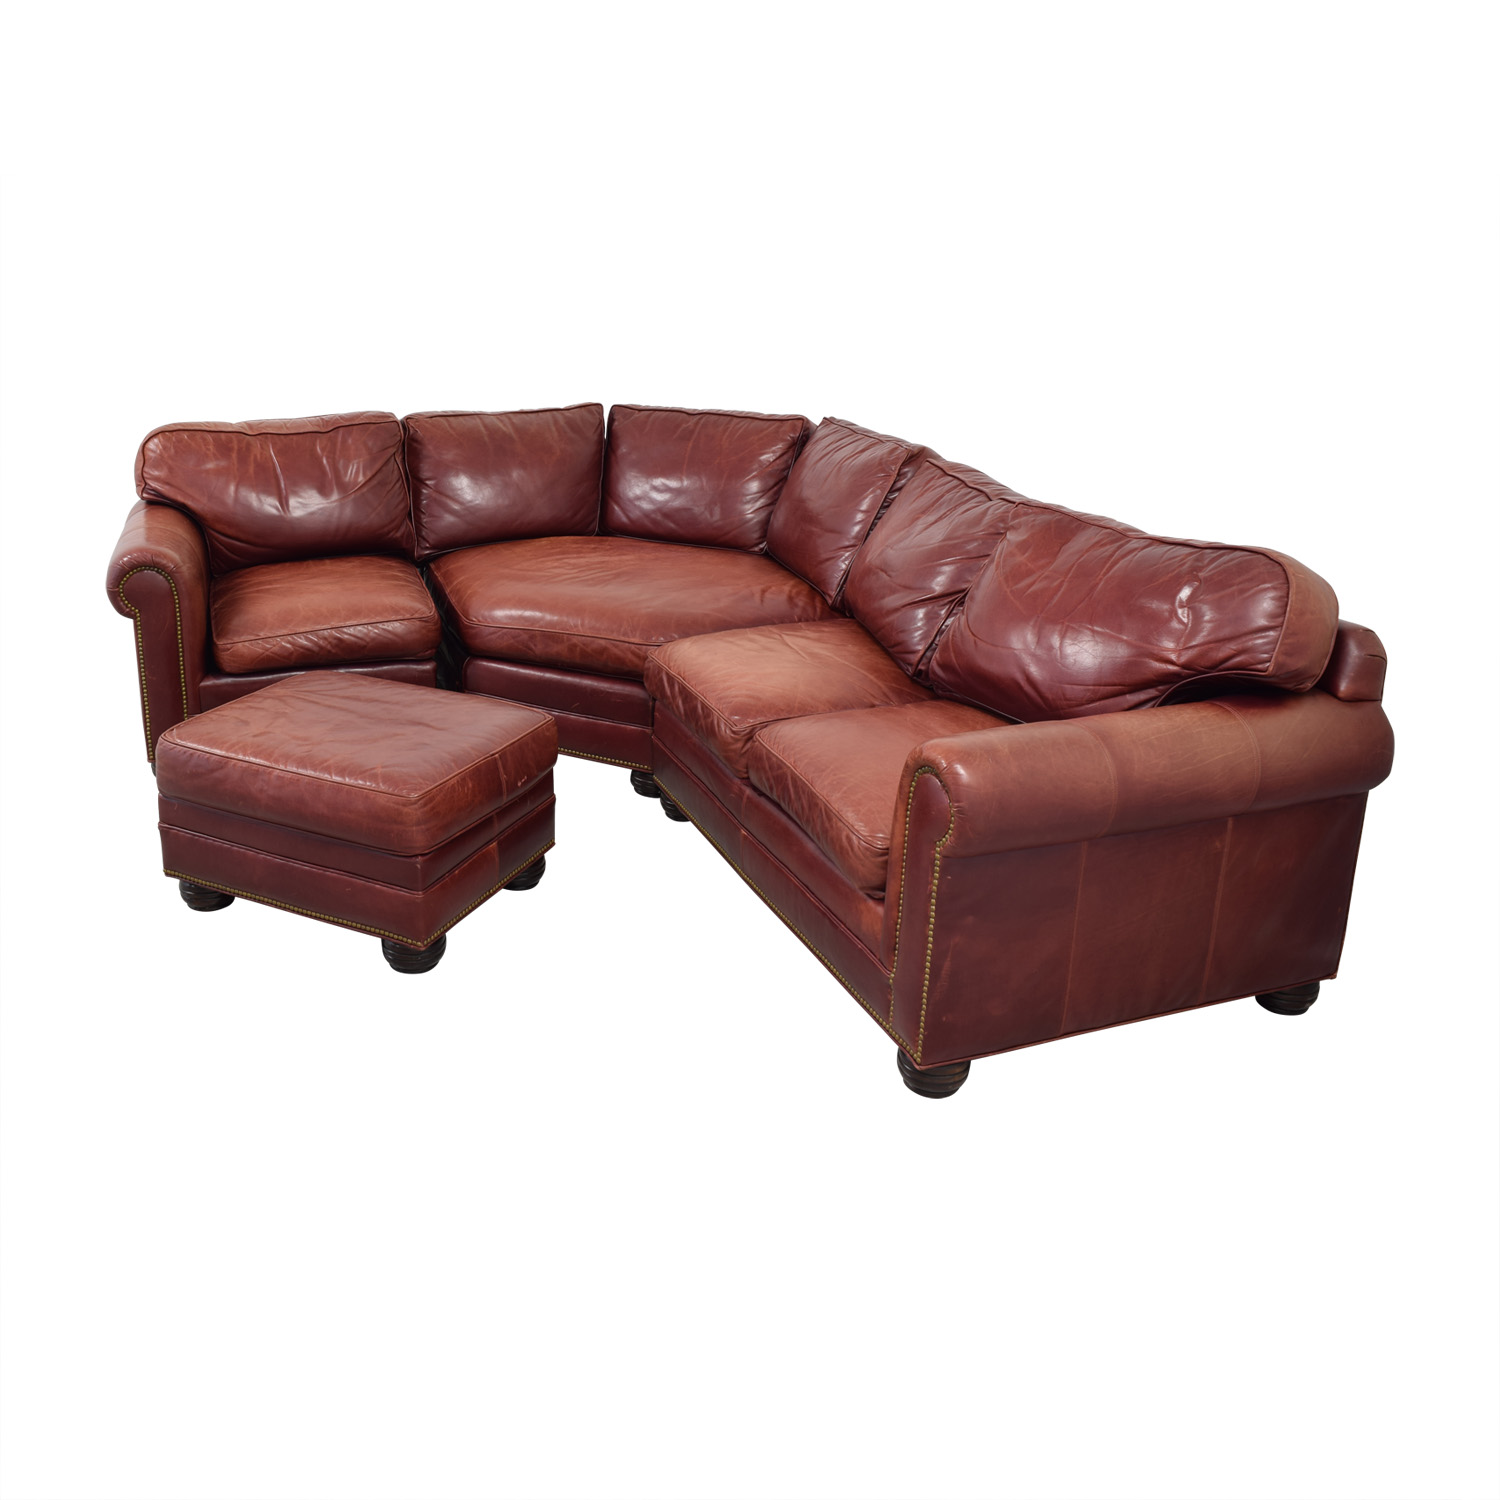 Zagaroli Classics Zagaroli Classics Oxblood Leather Sectional with Ottoman coupon